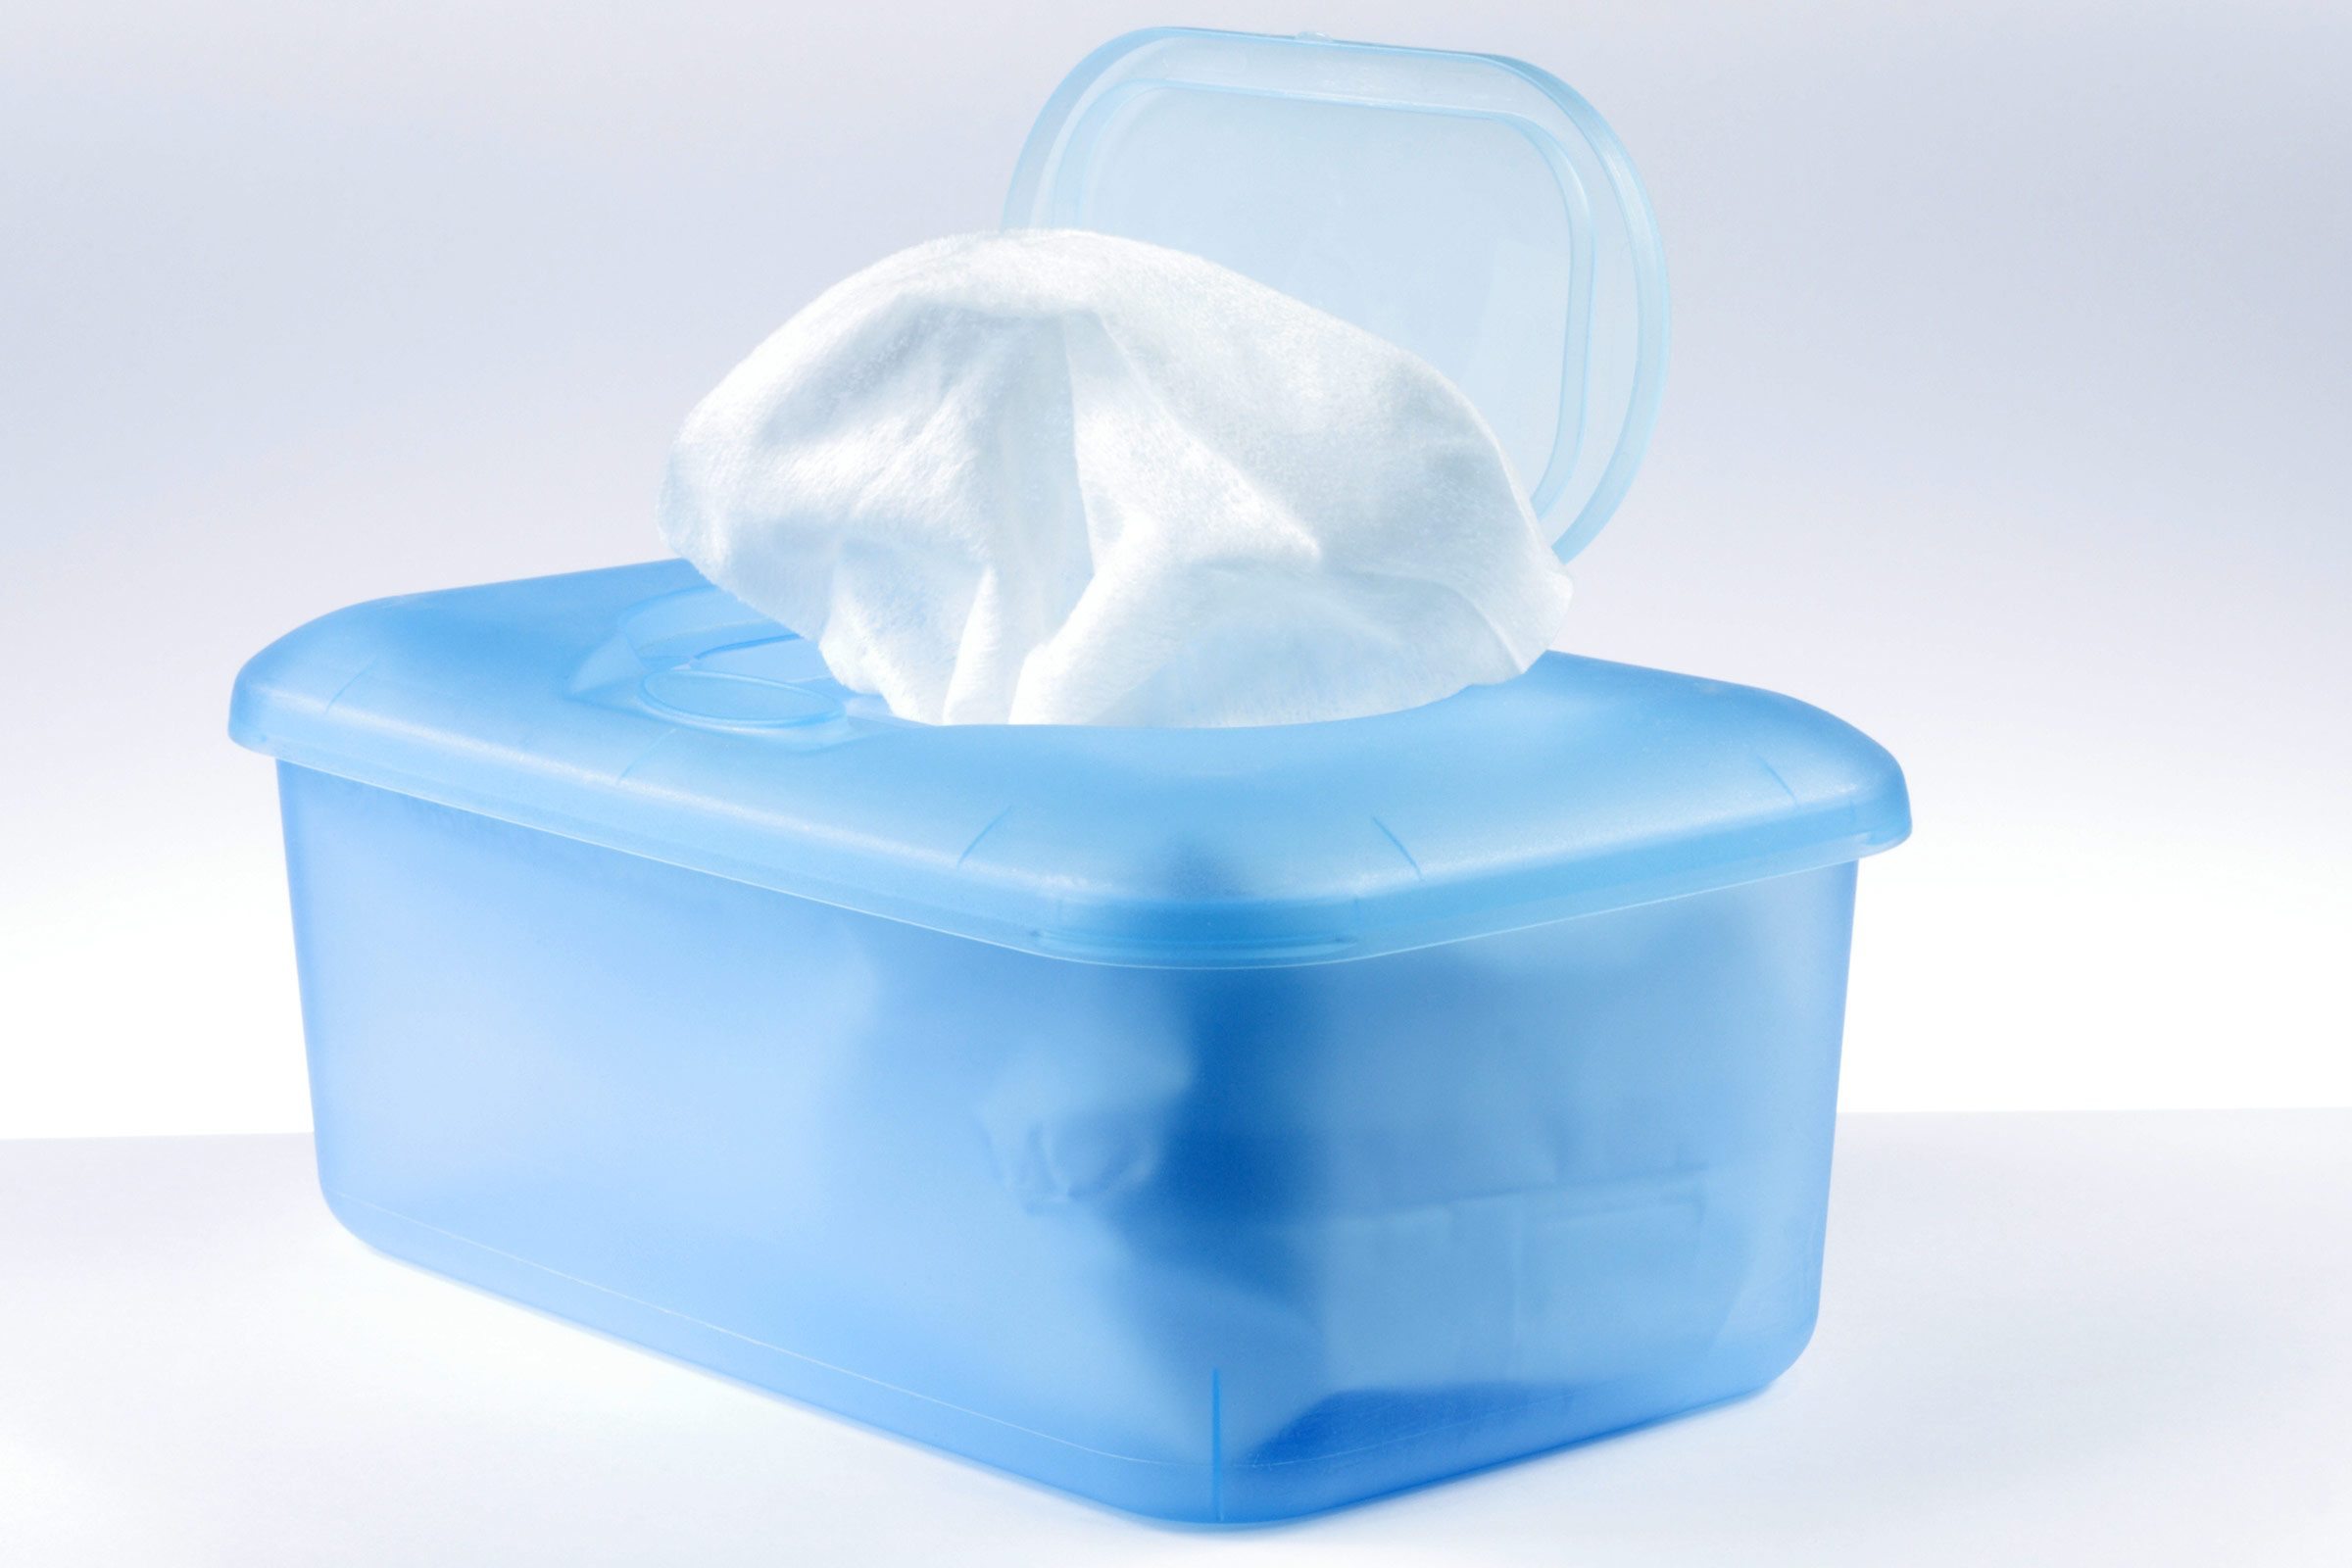 4. You can't have too many hand wipes (baby wipes work too!) to help with cleanup.